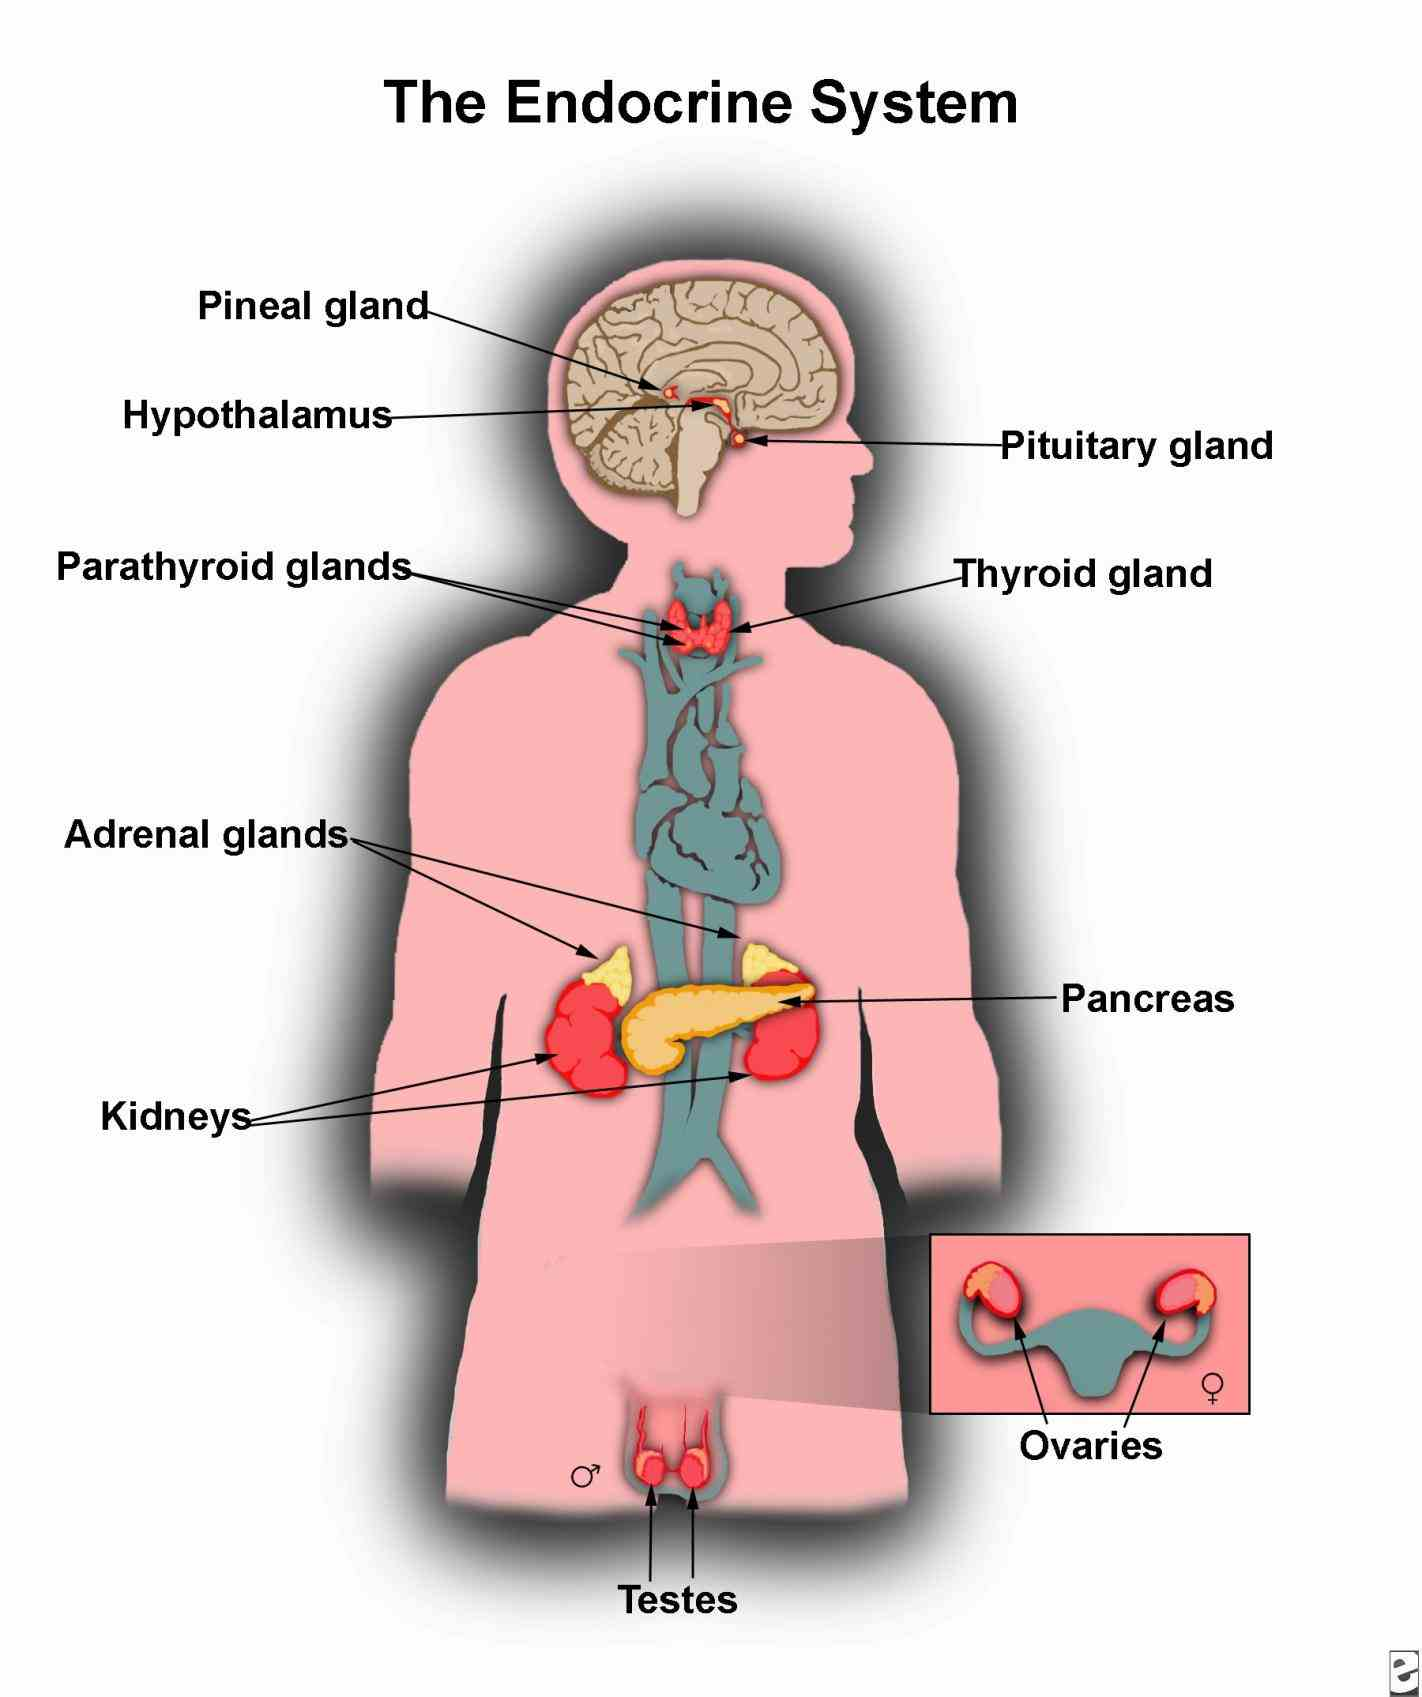 system we discuss different types hormones and examine how glands and  endorine Endocrine Glands Structure And Function glands are